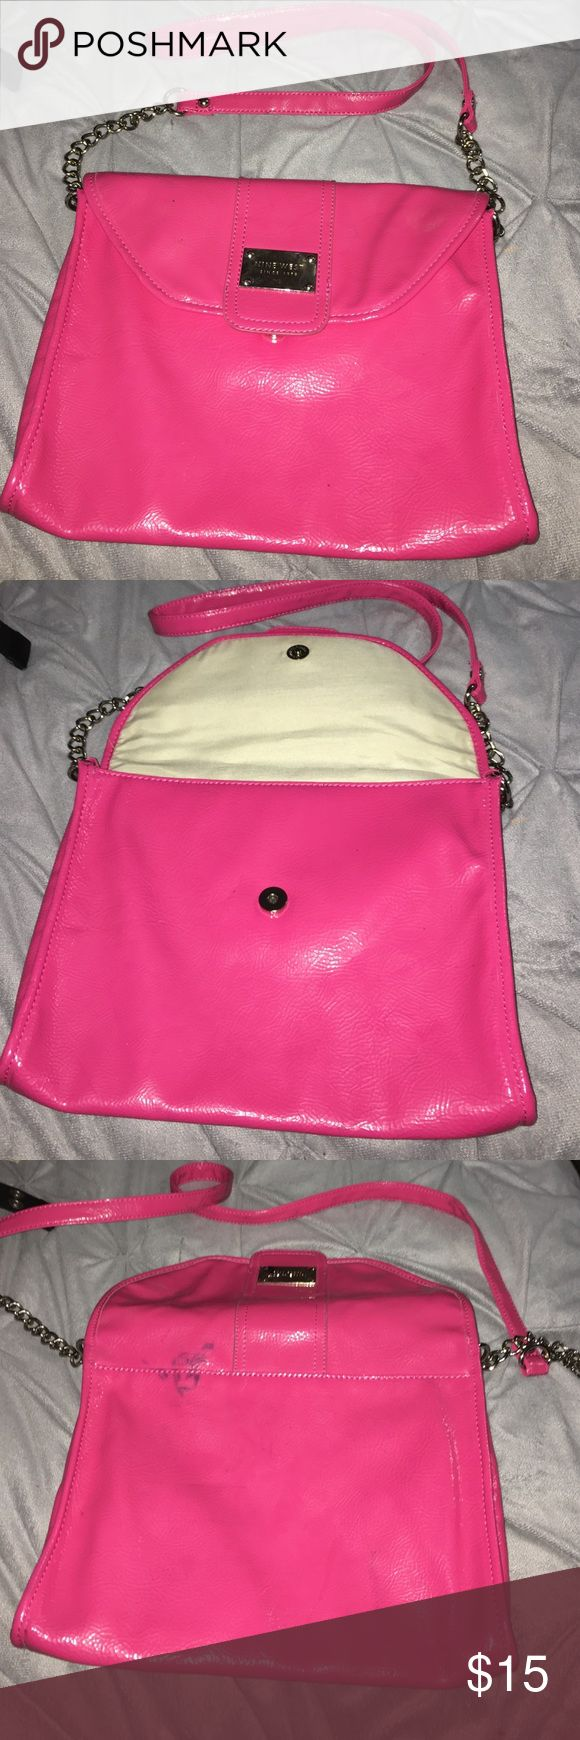 Nine West purse Nine West purse hot pink very cute has a blue stain can be removed by cleaners. Nine West Bags Satchels